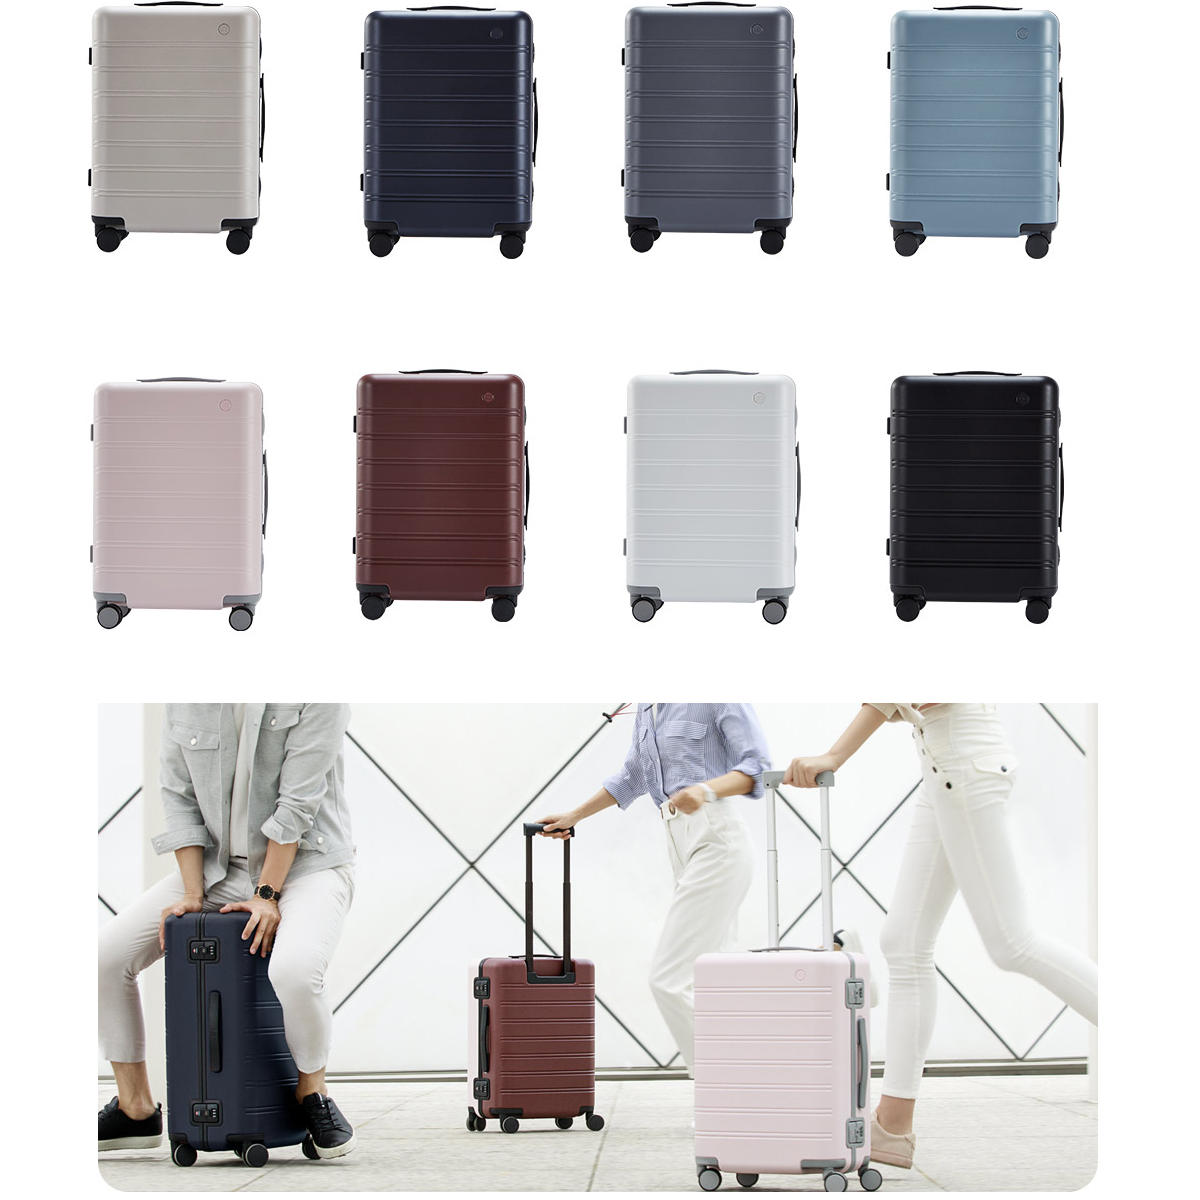 90FUN 24inch Travel Suitcase Universal Wheel Luggage Case from Xiaomi Youpin